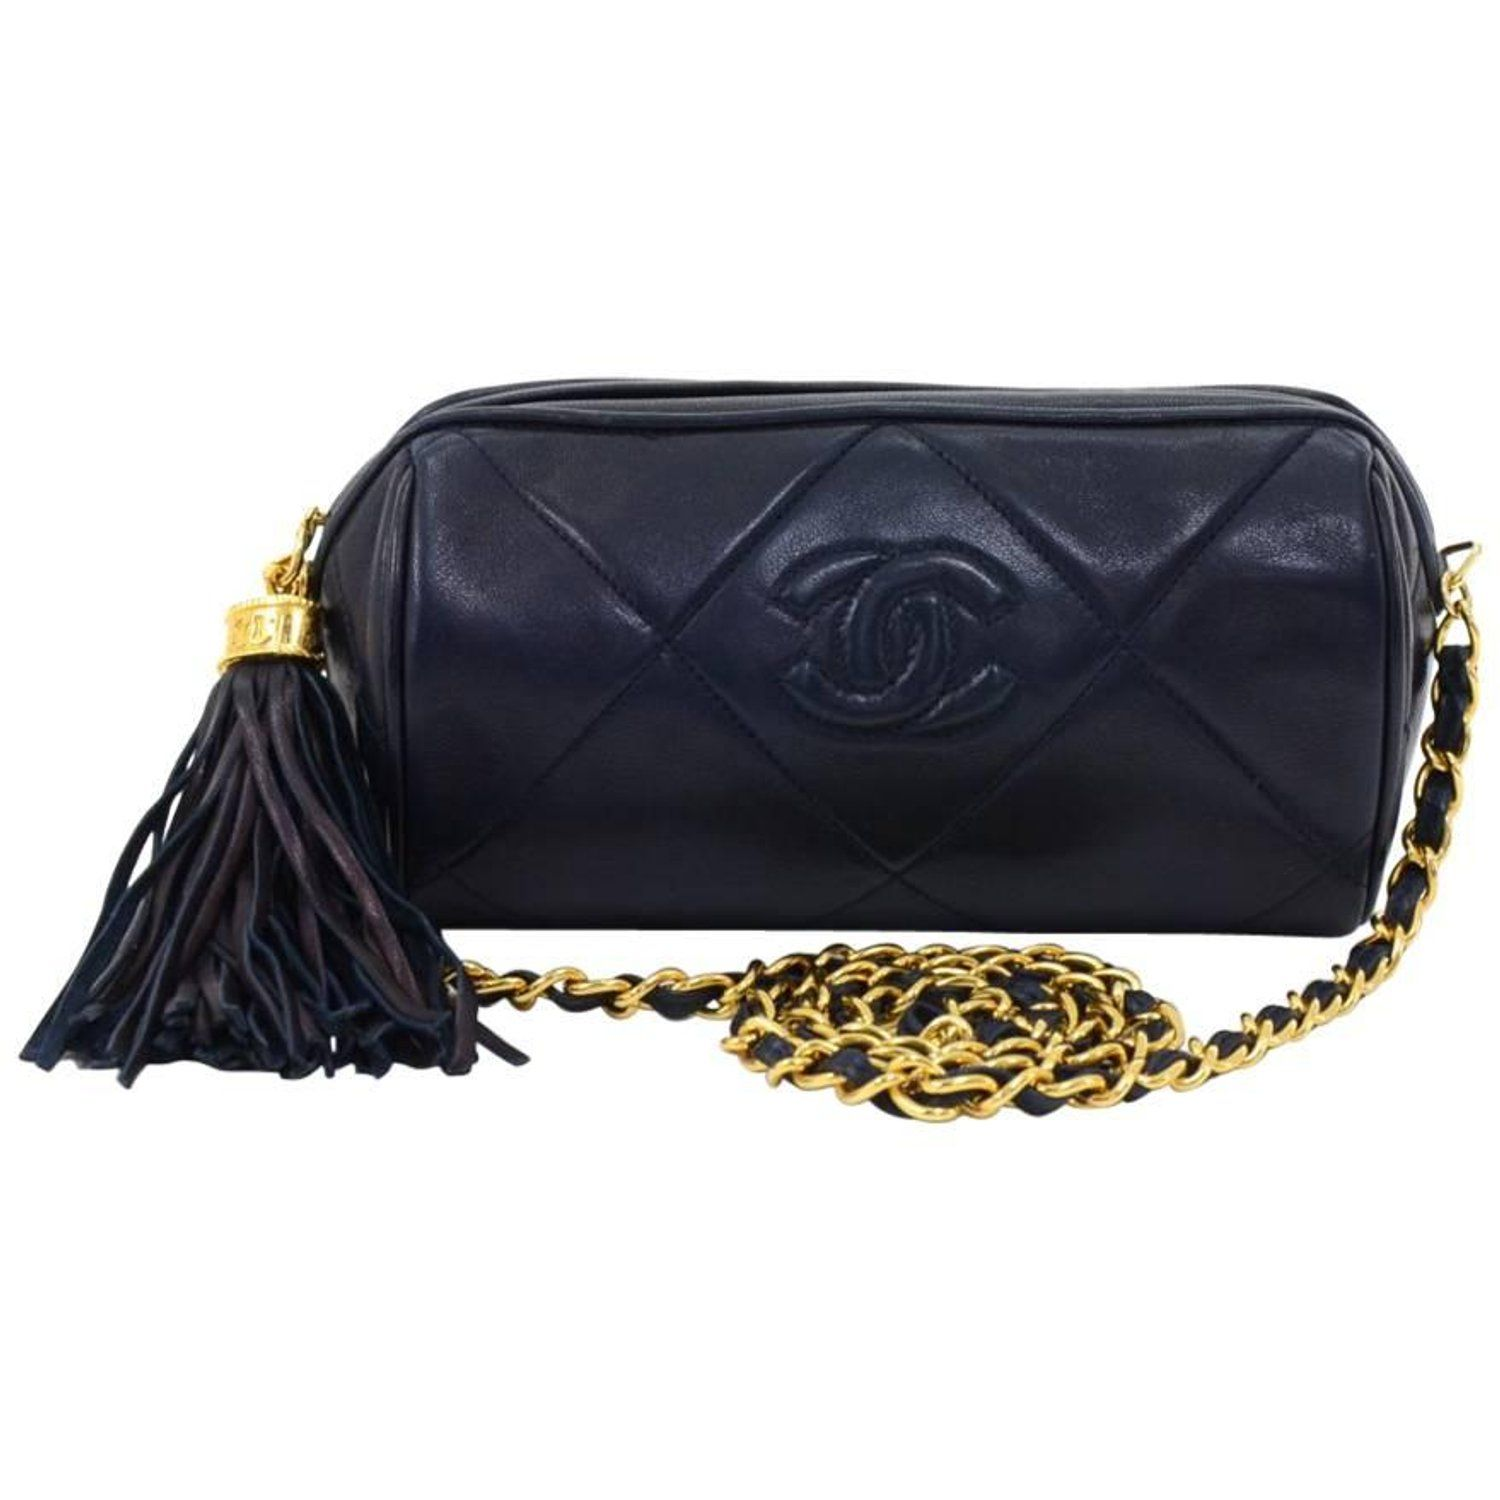 2571af366289 Vintage Chanel Navy Diamond Quilted Leather Barrel Shoulder Bag | My ...